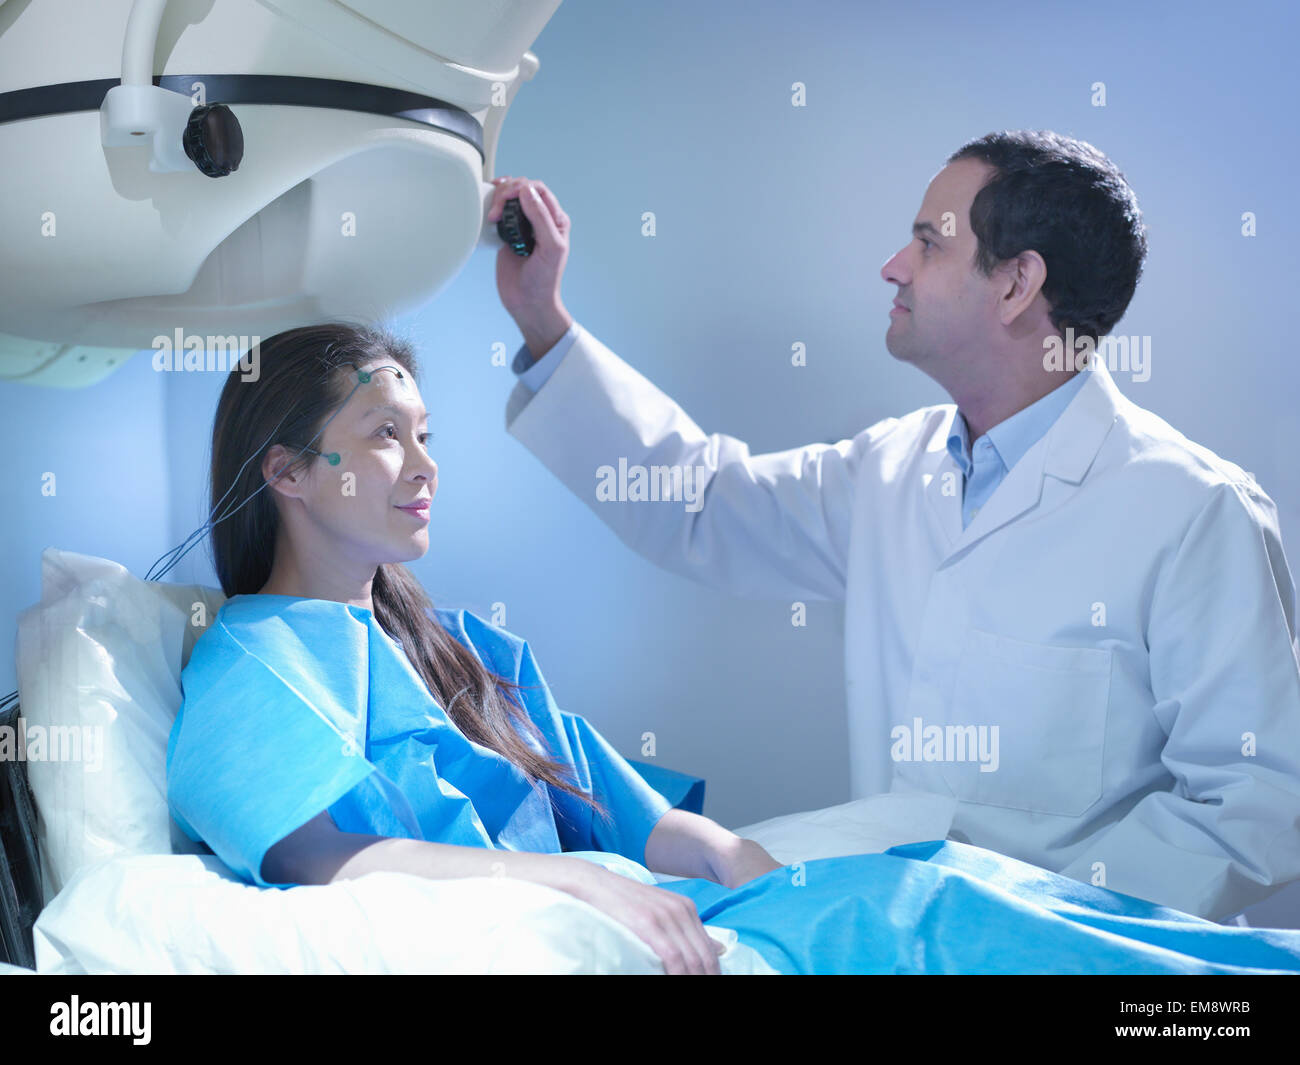 Doctor treating patient using magnetoencephalography (MEG) scanner - Stock Image